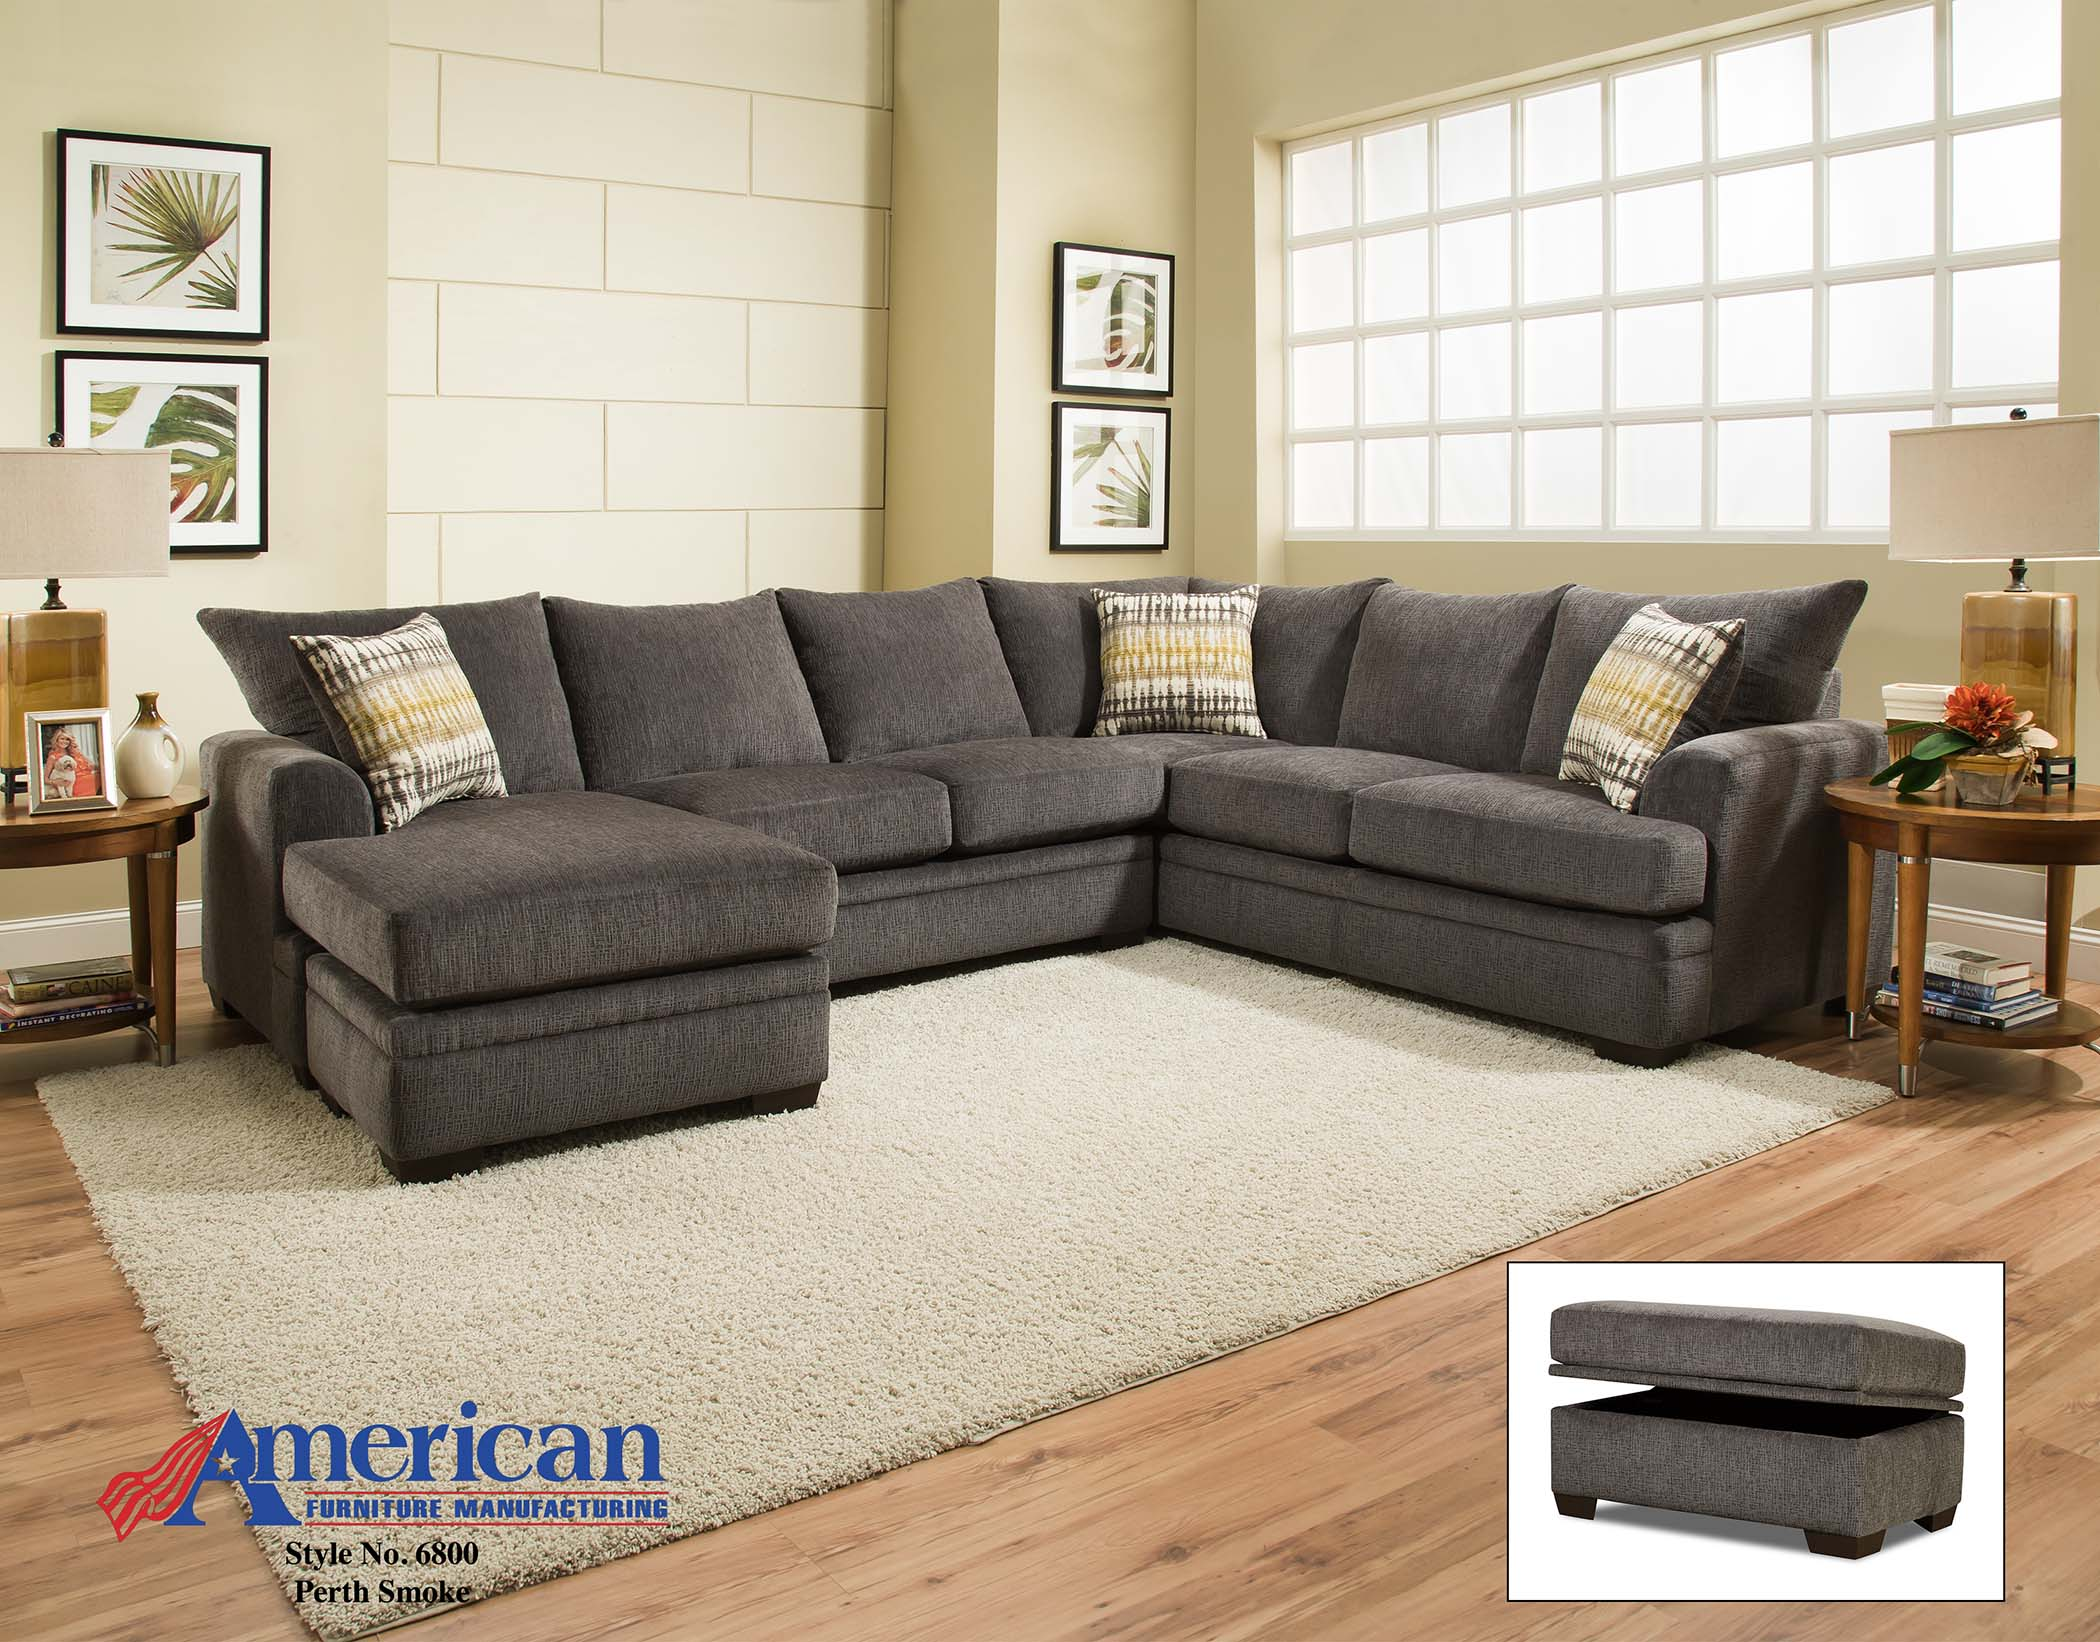 6800 perth smoke sectional american furniture for Affordable furniture manufacturing